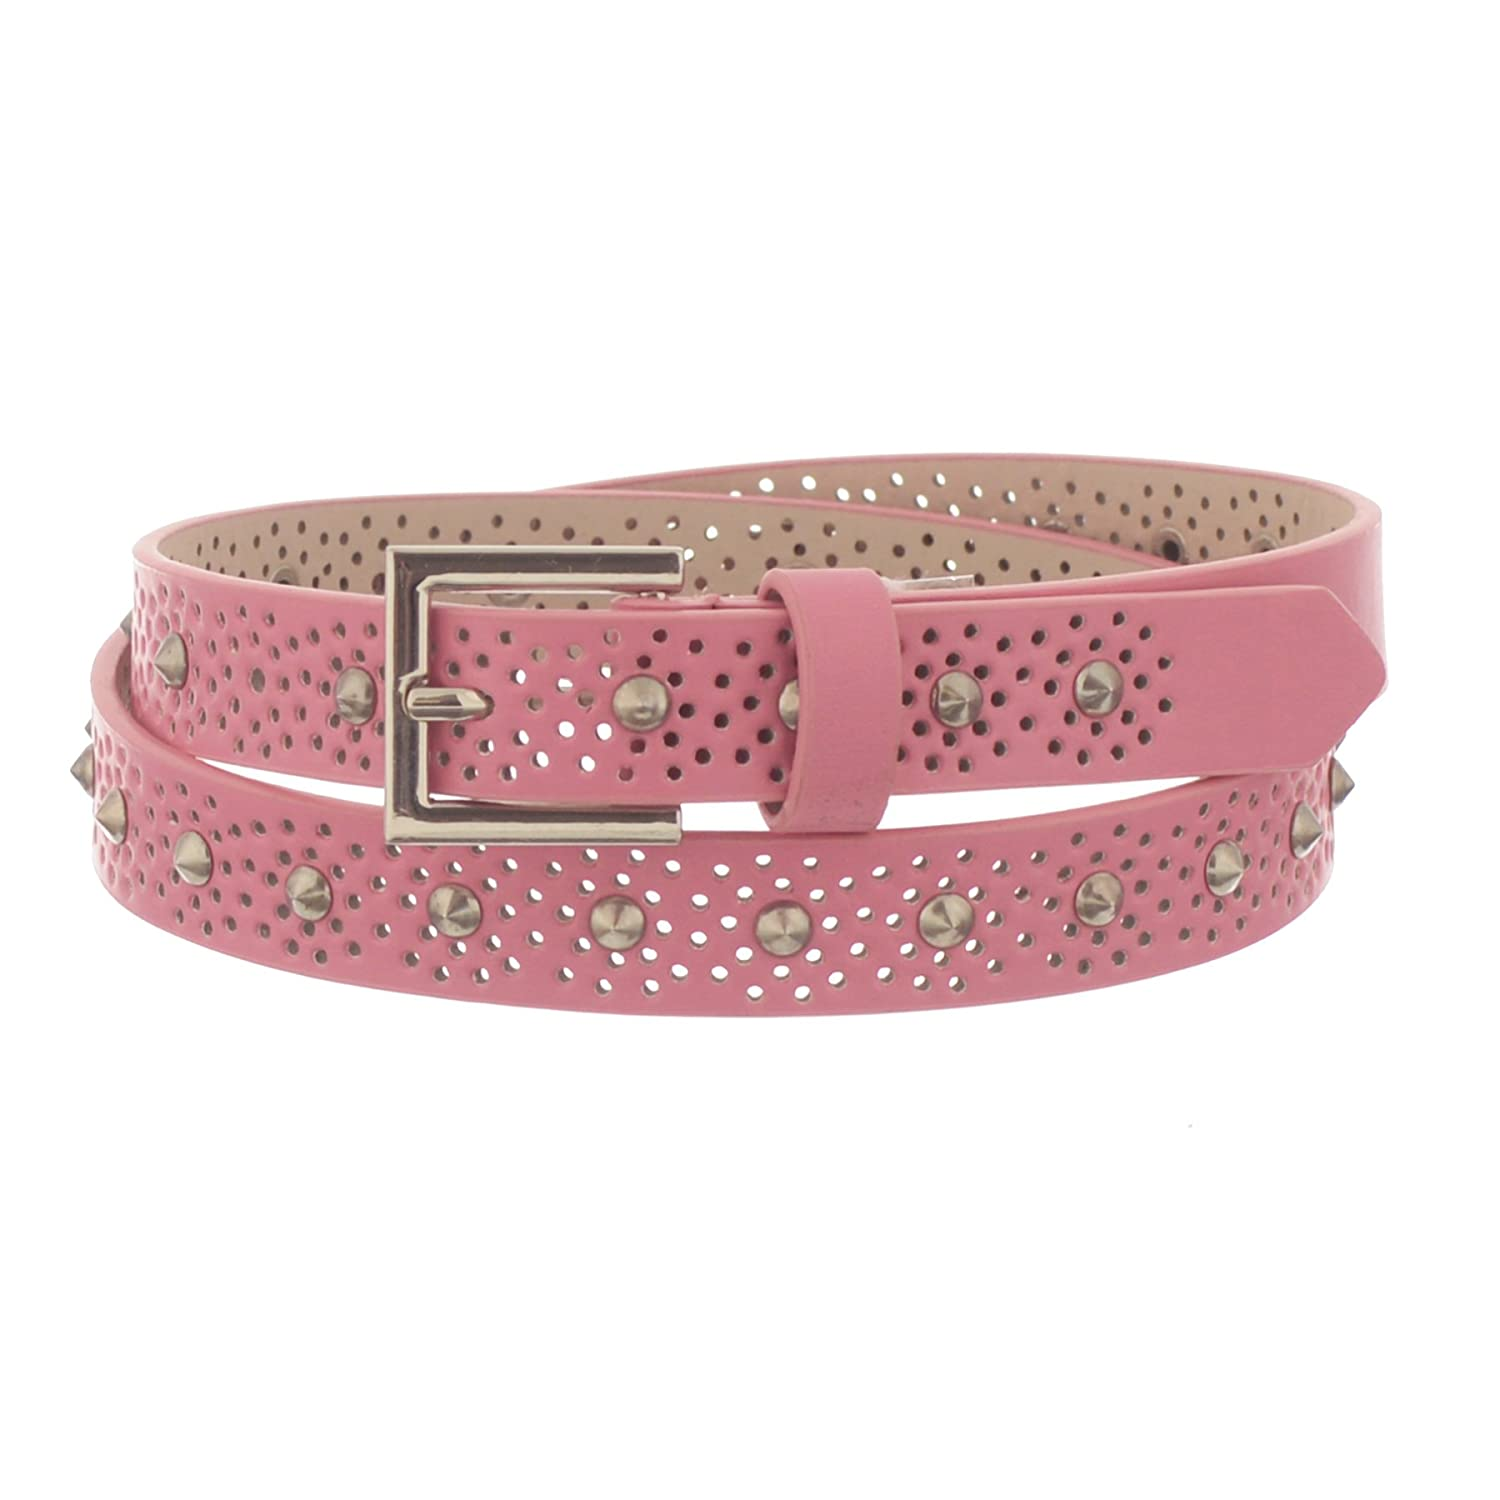 Xcessoire Girls 3/4 Perforated Fashion Leather Belt LANG_B20574